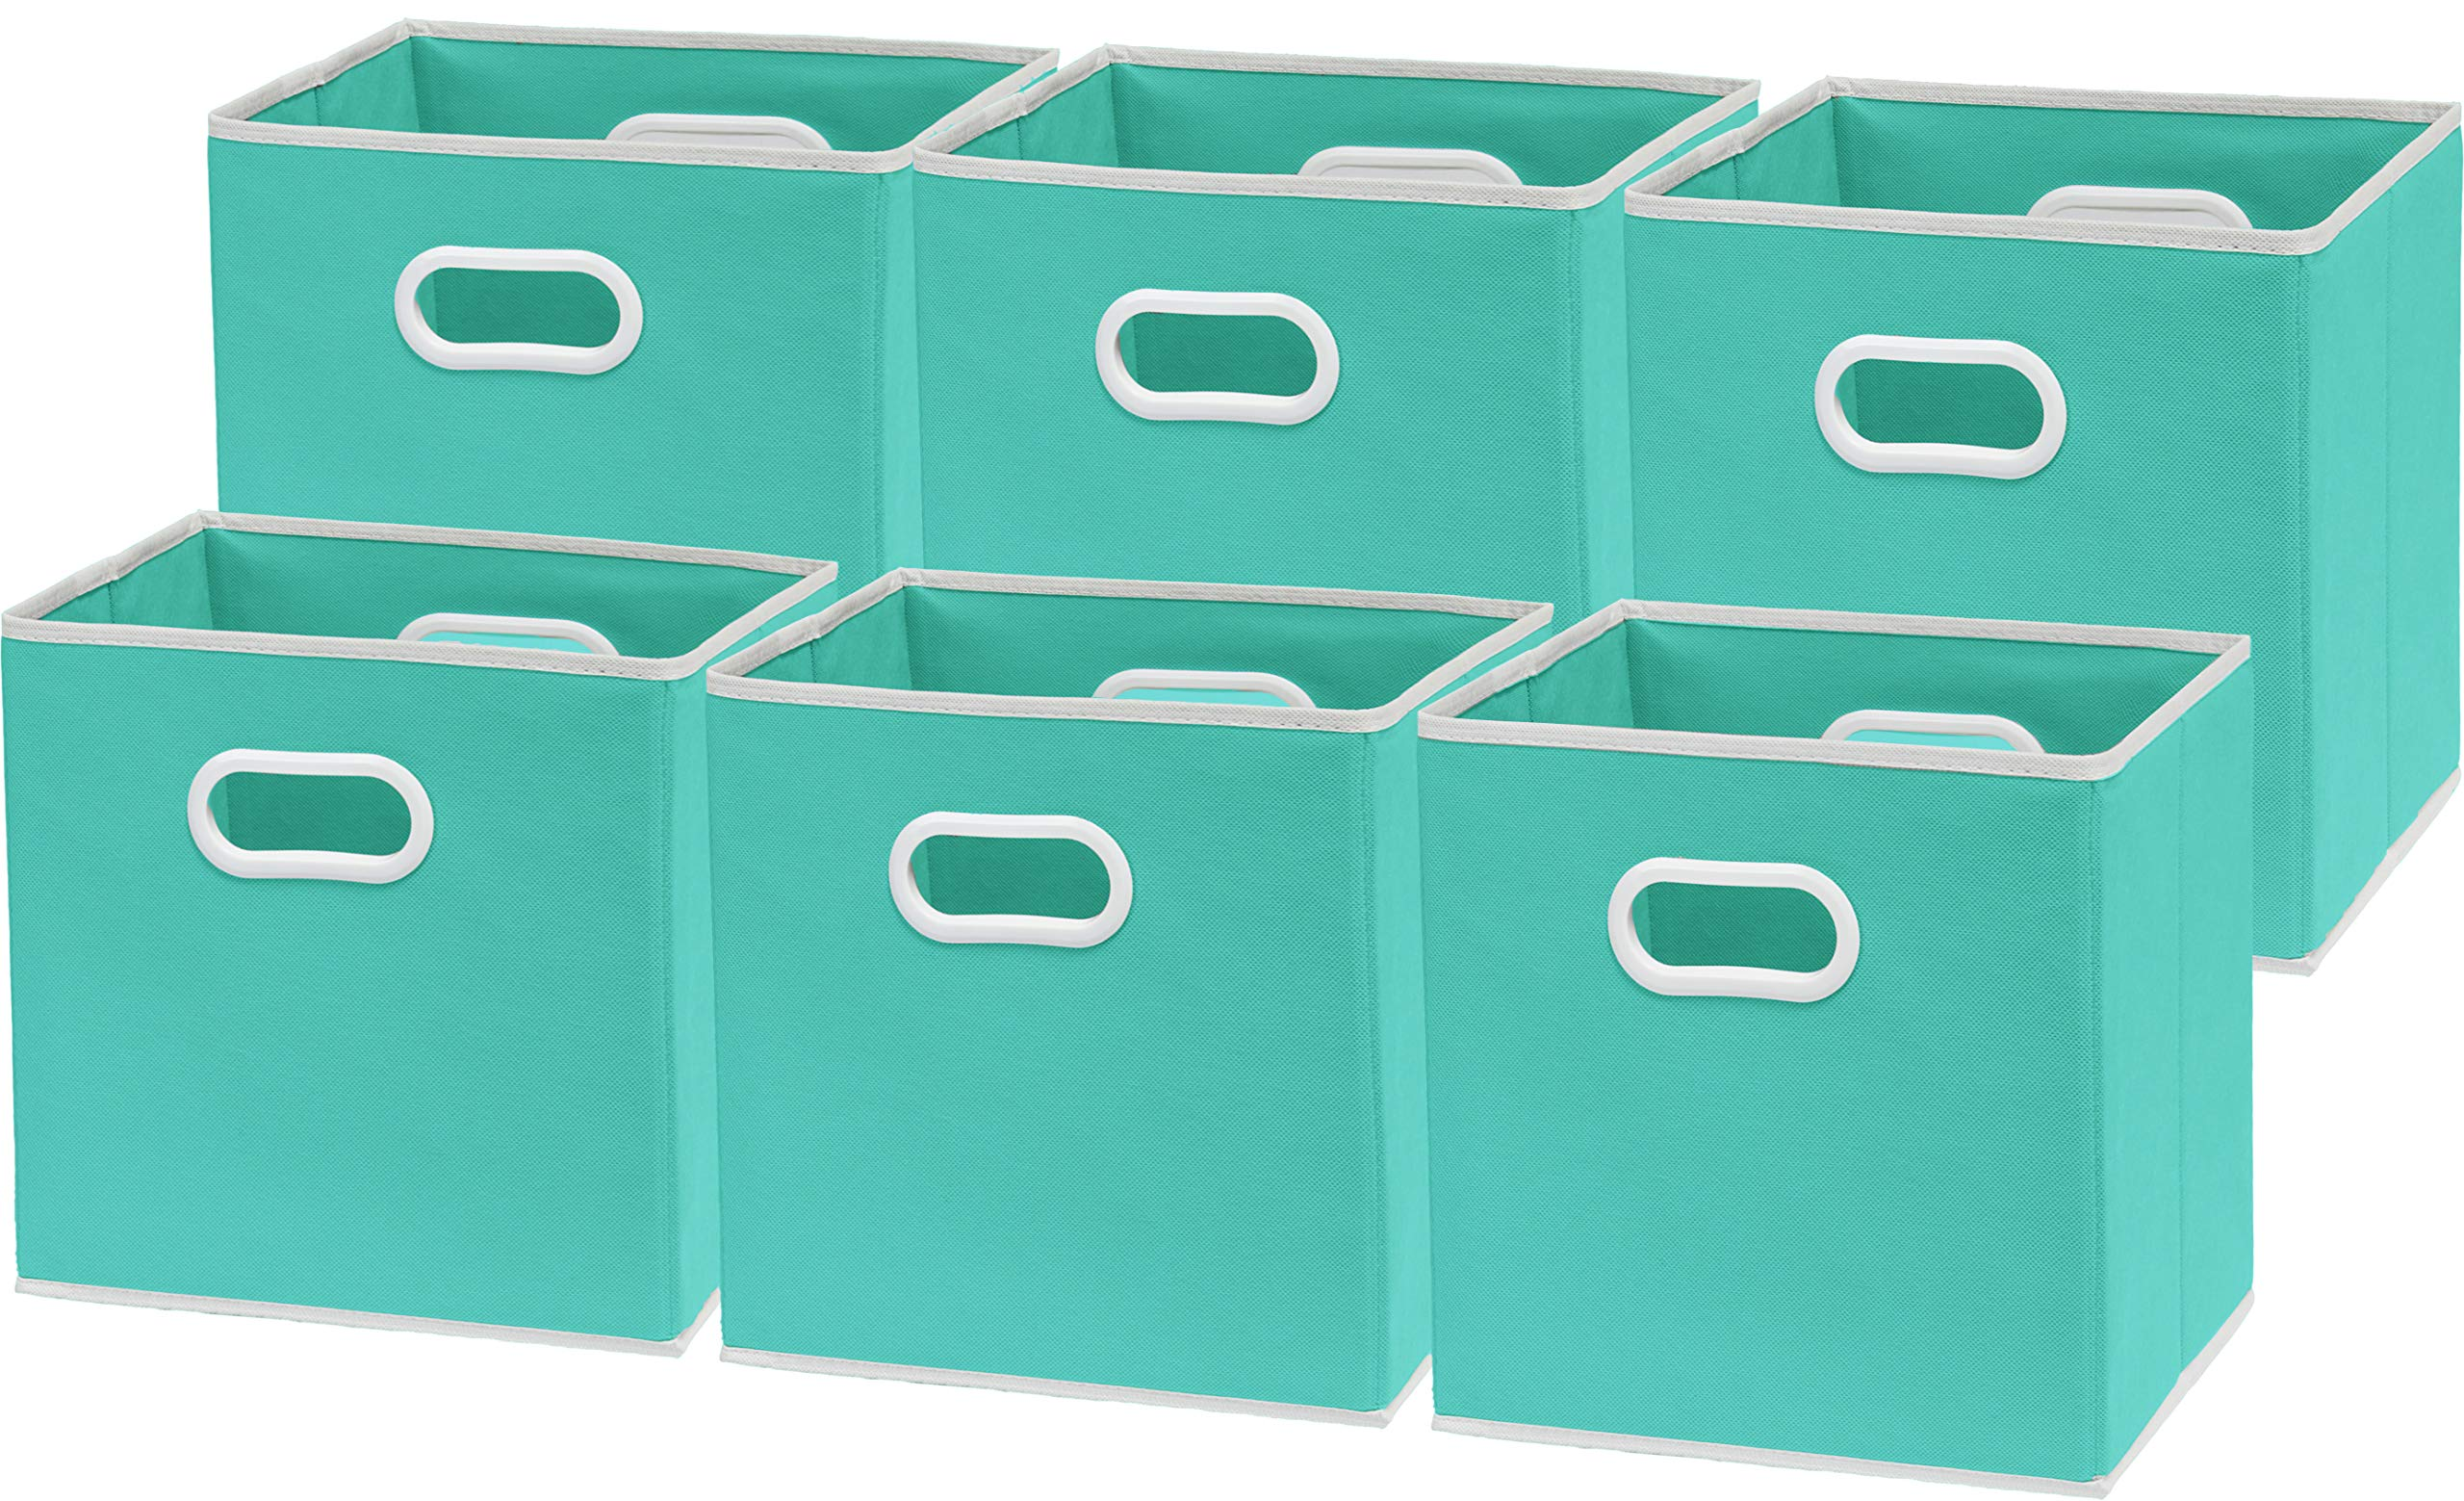 6 Pack - SimpleHouseware Foldable Cube Storage Bin with Handle, Turquoise (12-Inch Cube) by Simple Houseware